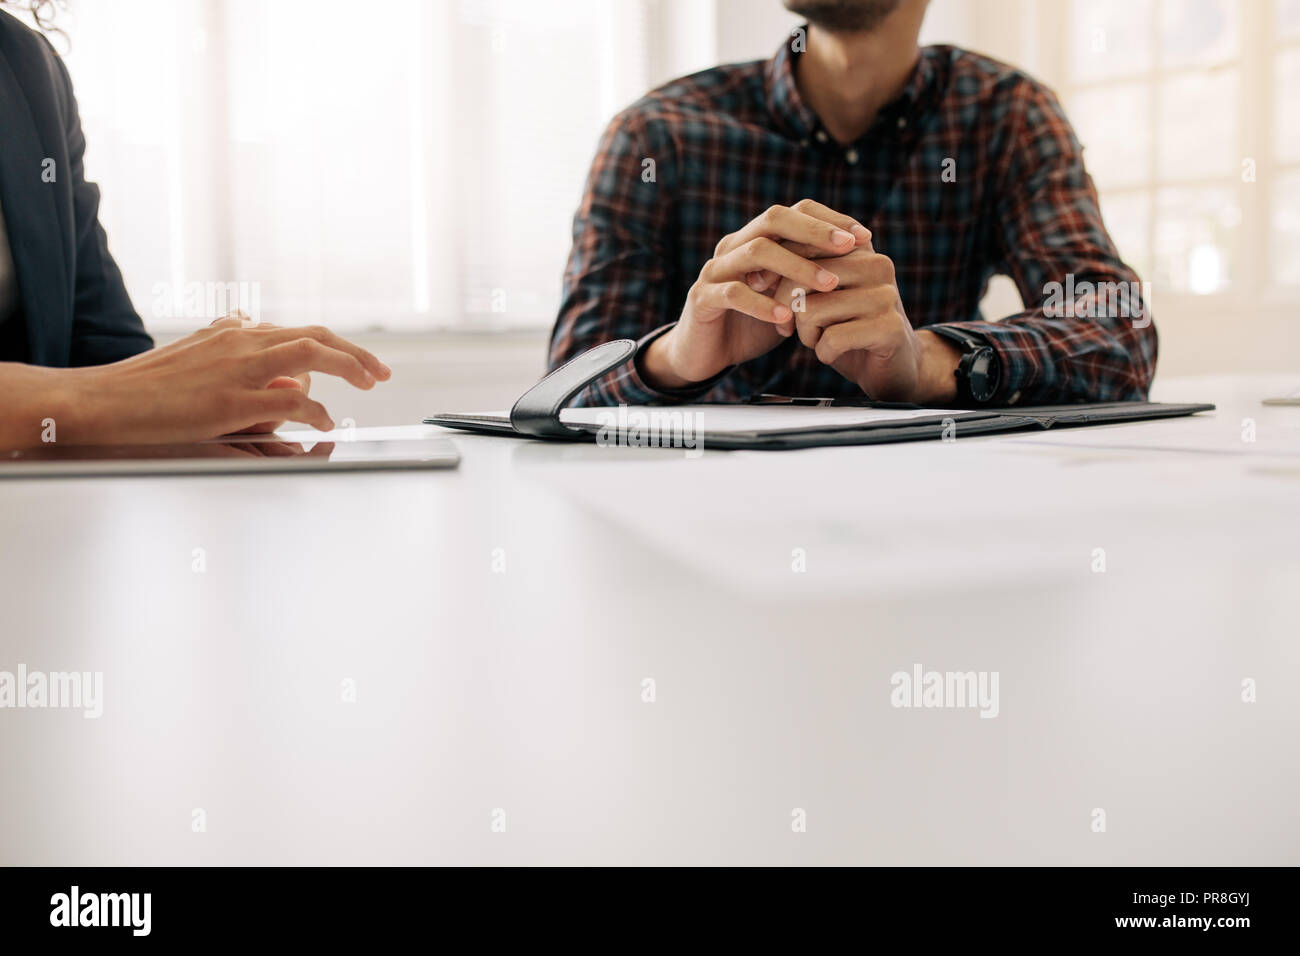 Close up shot focusing on hand gestures of business colleagues during a meeting. Two business people sitting at the table discussing work. - Stock Image